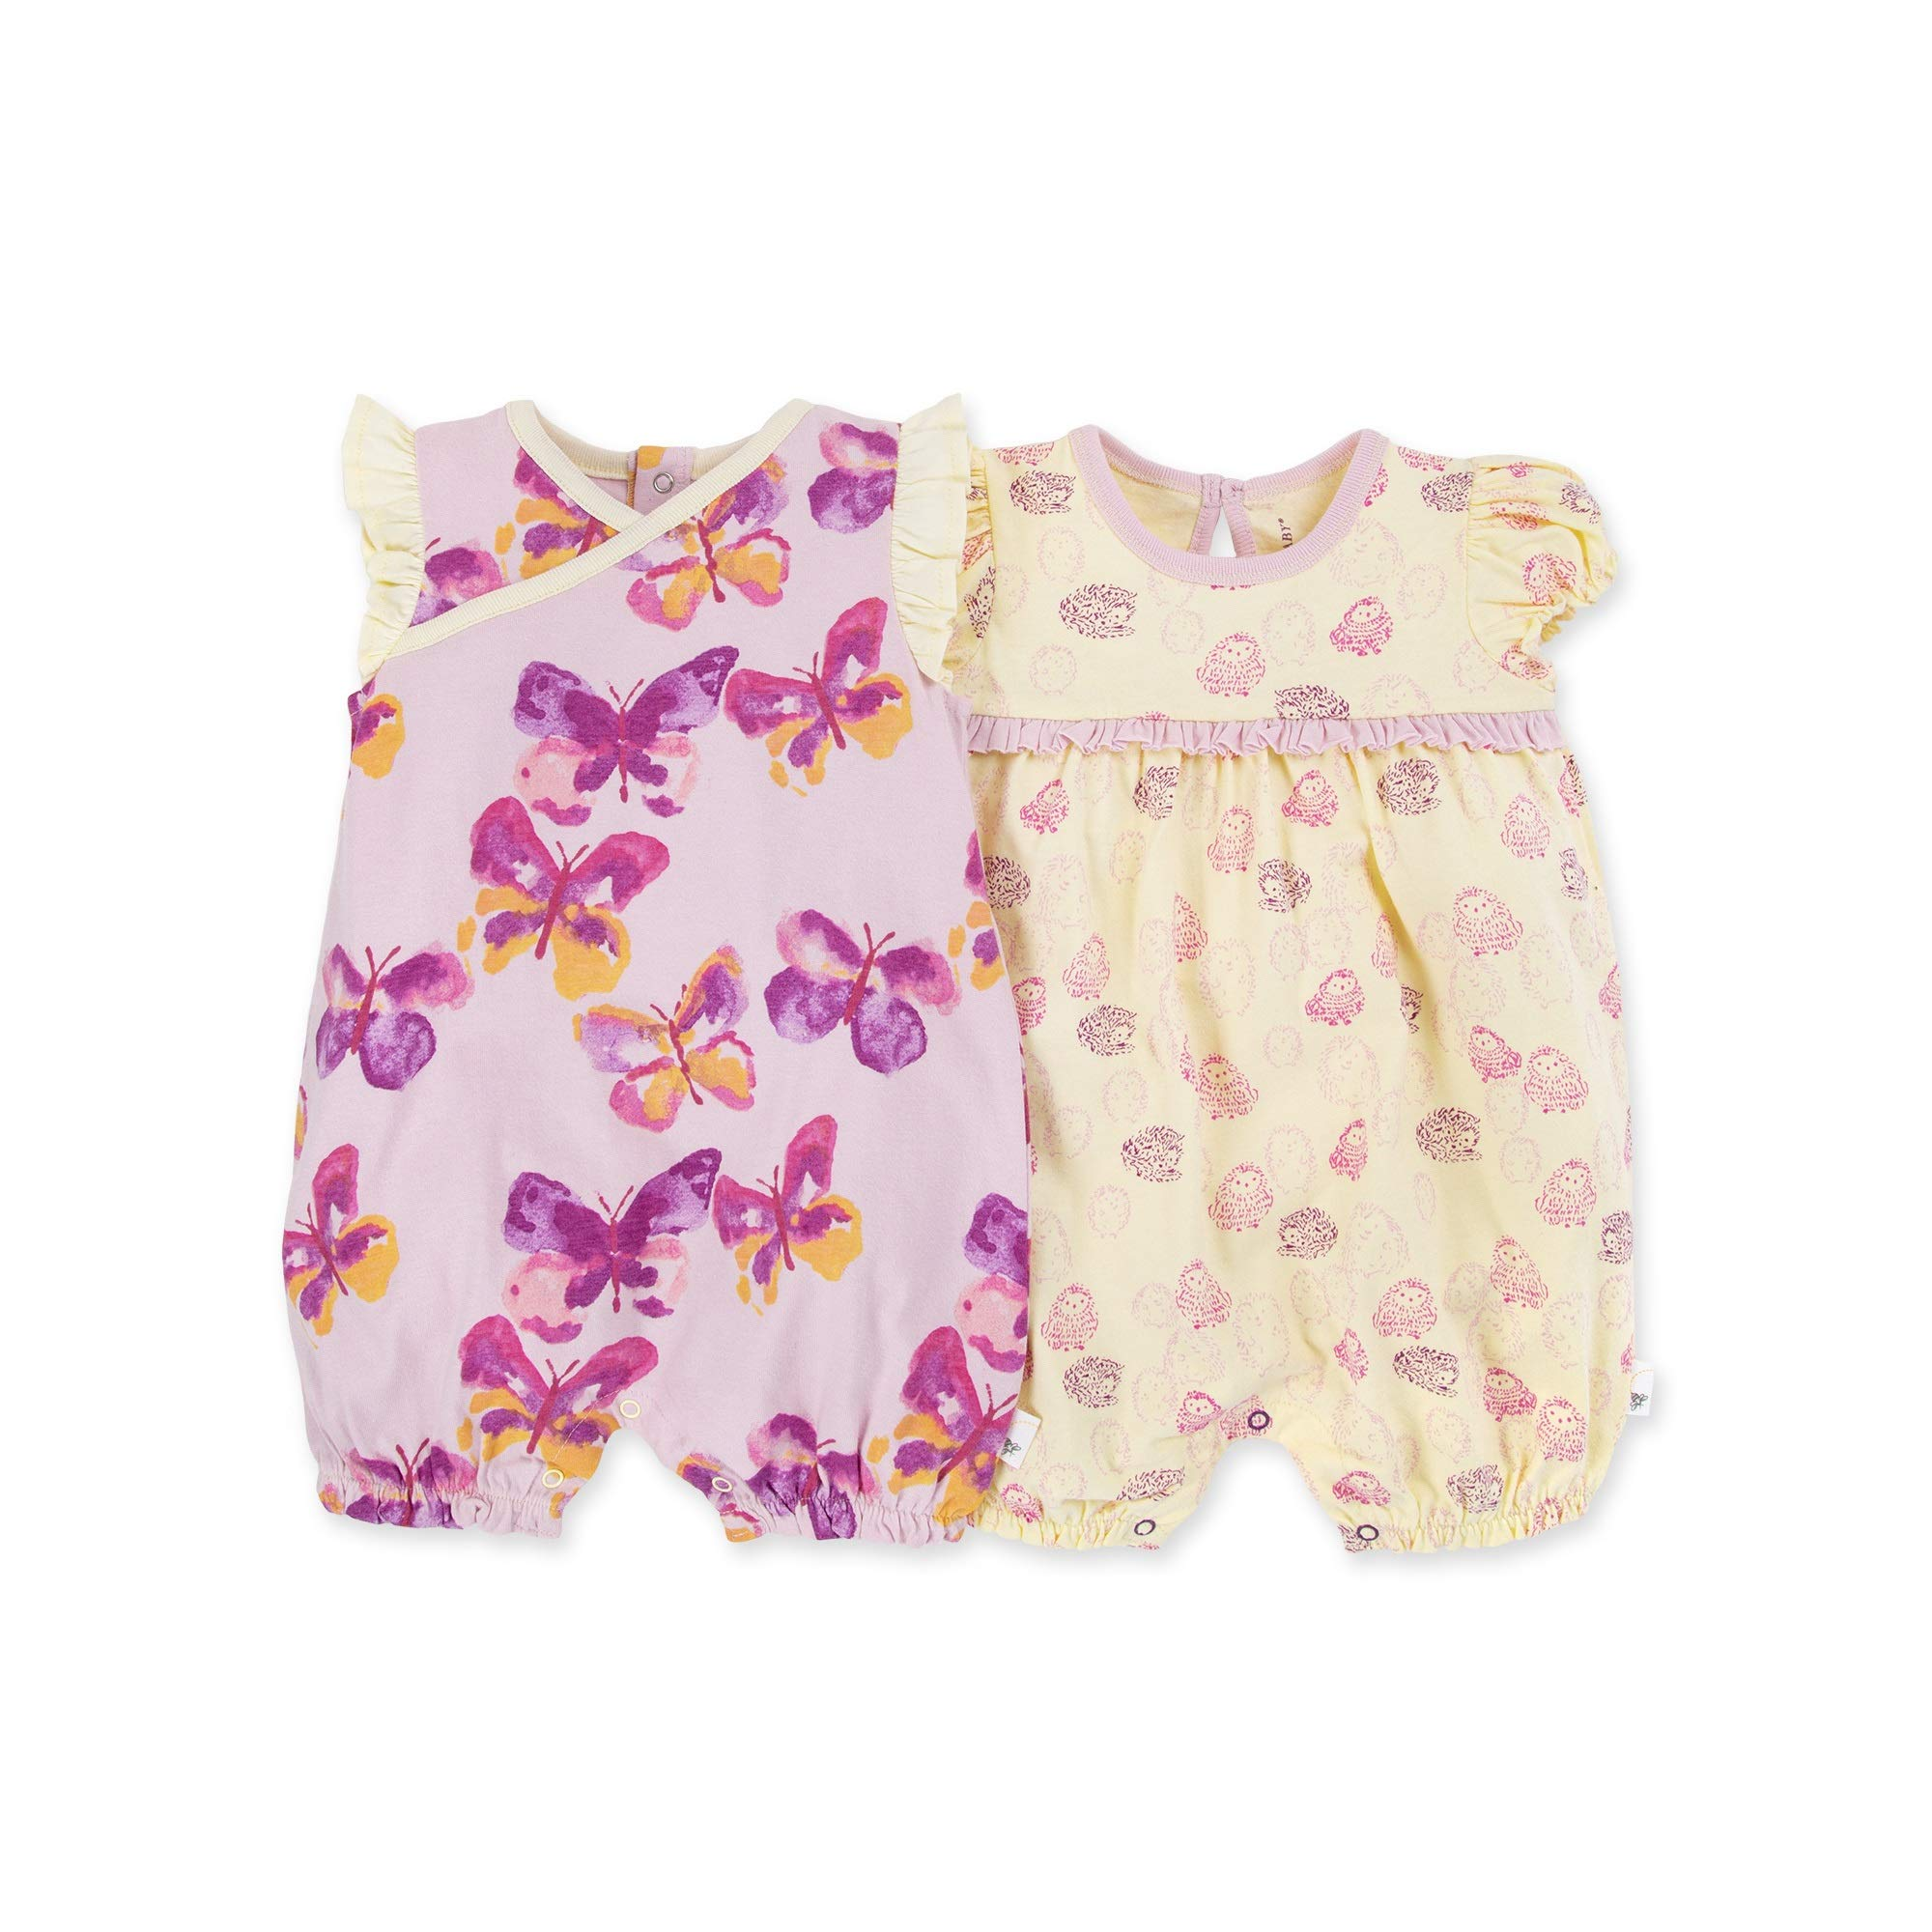 100/% Organic Cotton Burts Bees Baby Baby Girls Rompers Set of 2 Bubbles One Piece Jumpsuits